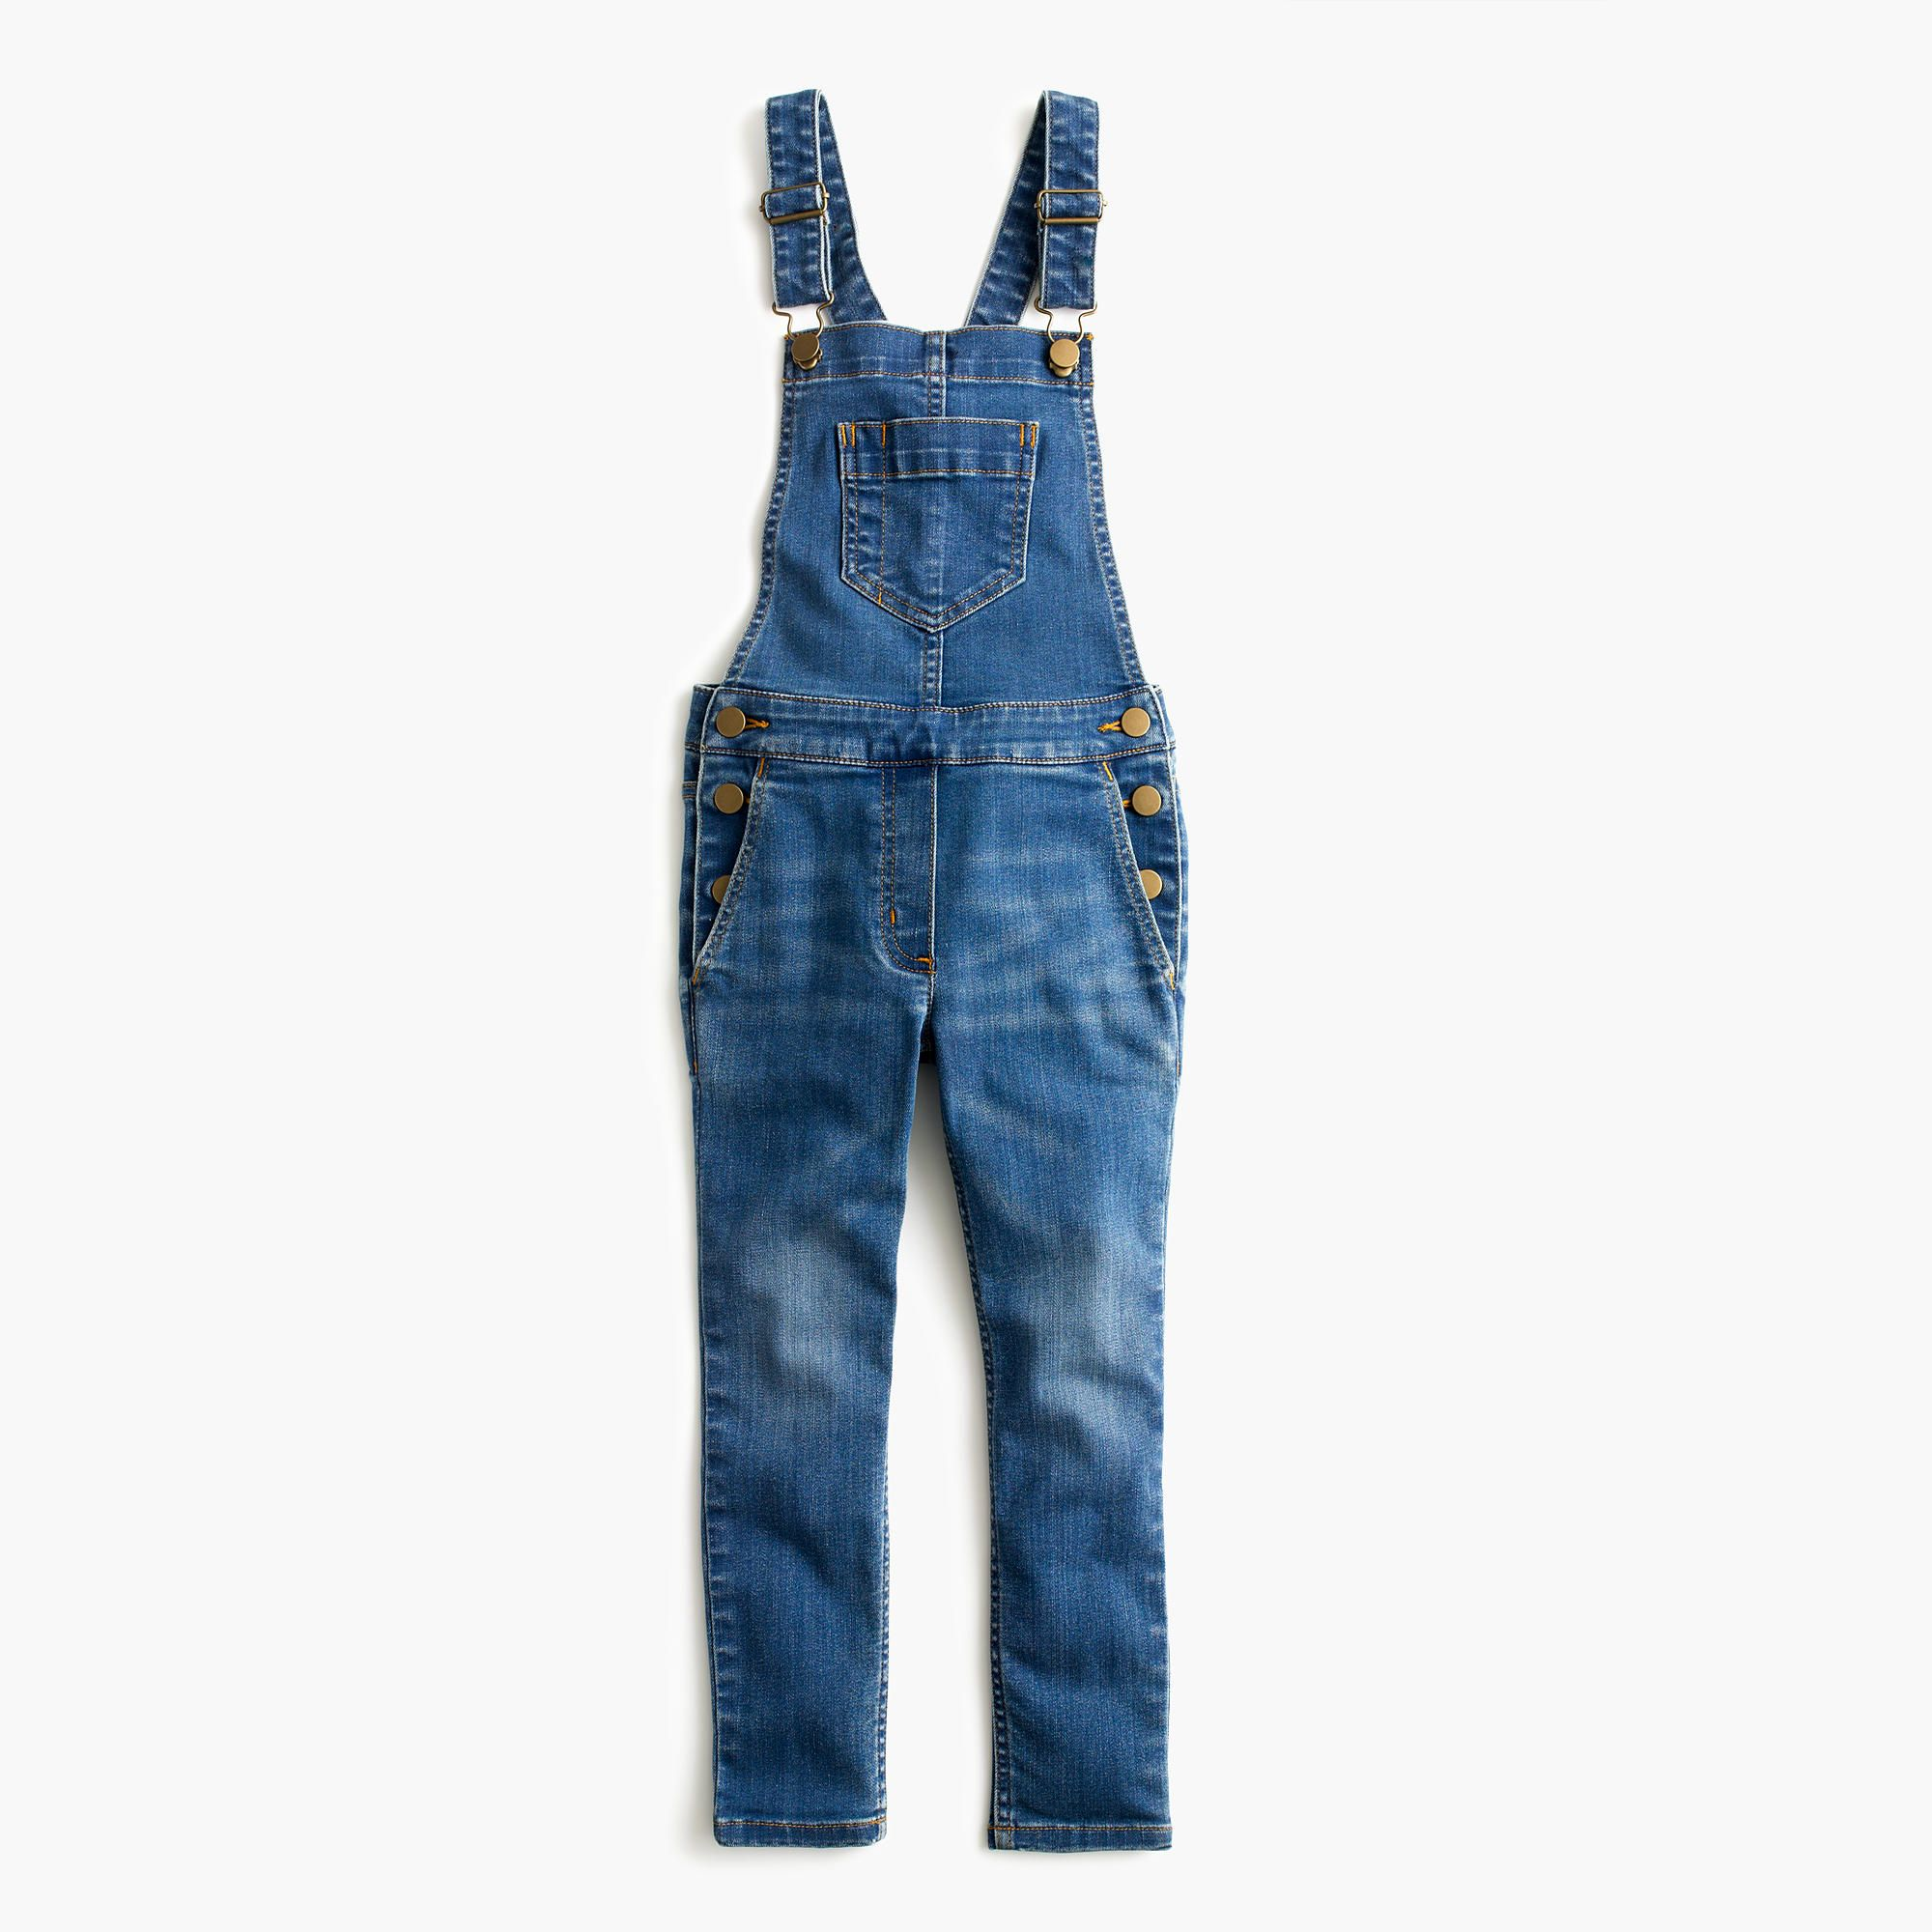 1ad56f3b1b Shop the Girls  Stretch Denim Overalls at JCrew.com and see our entire  selection